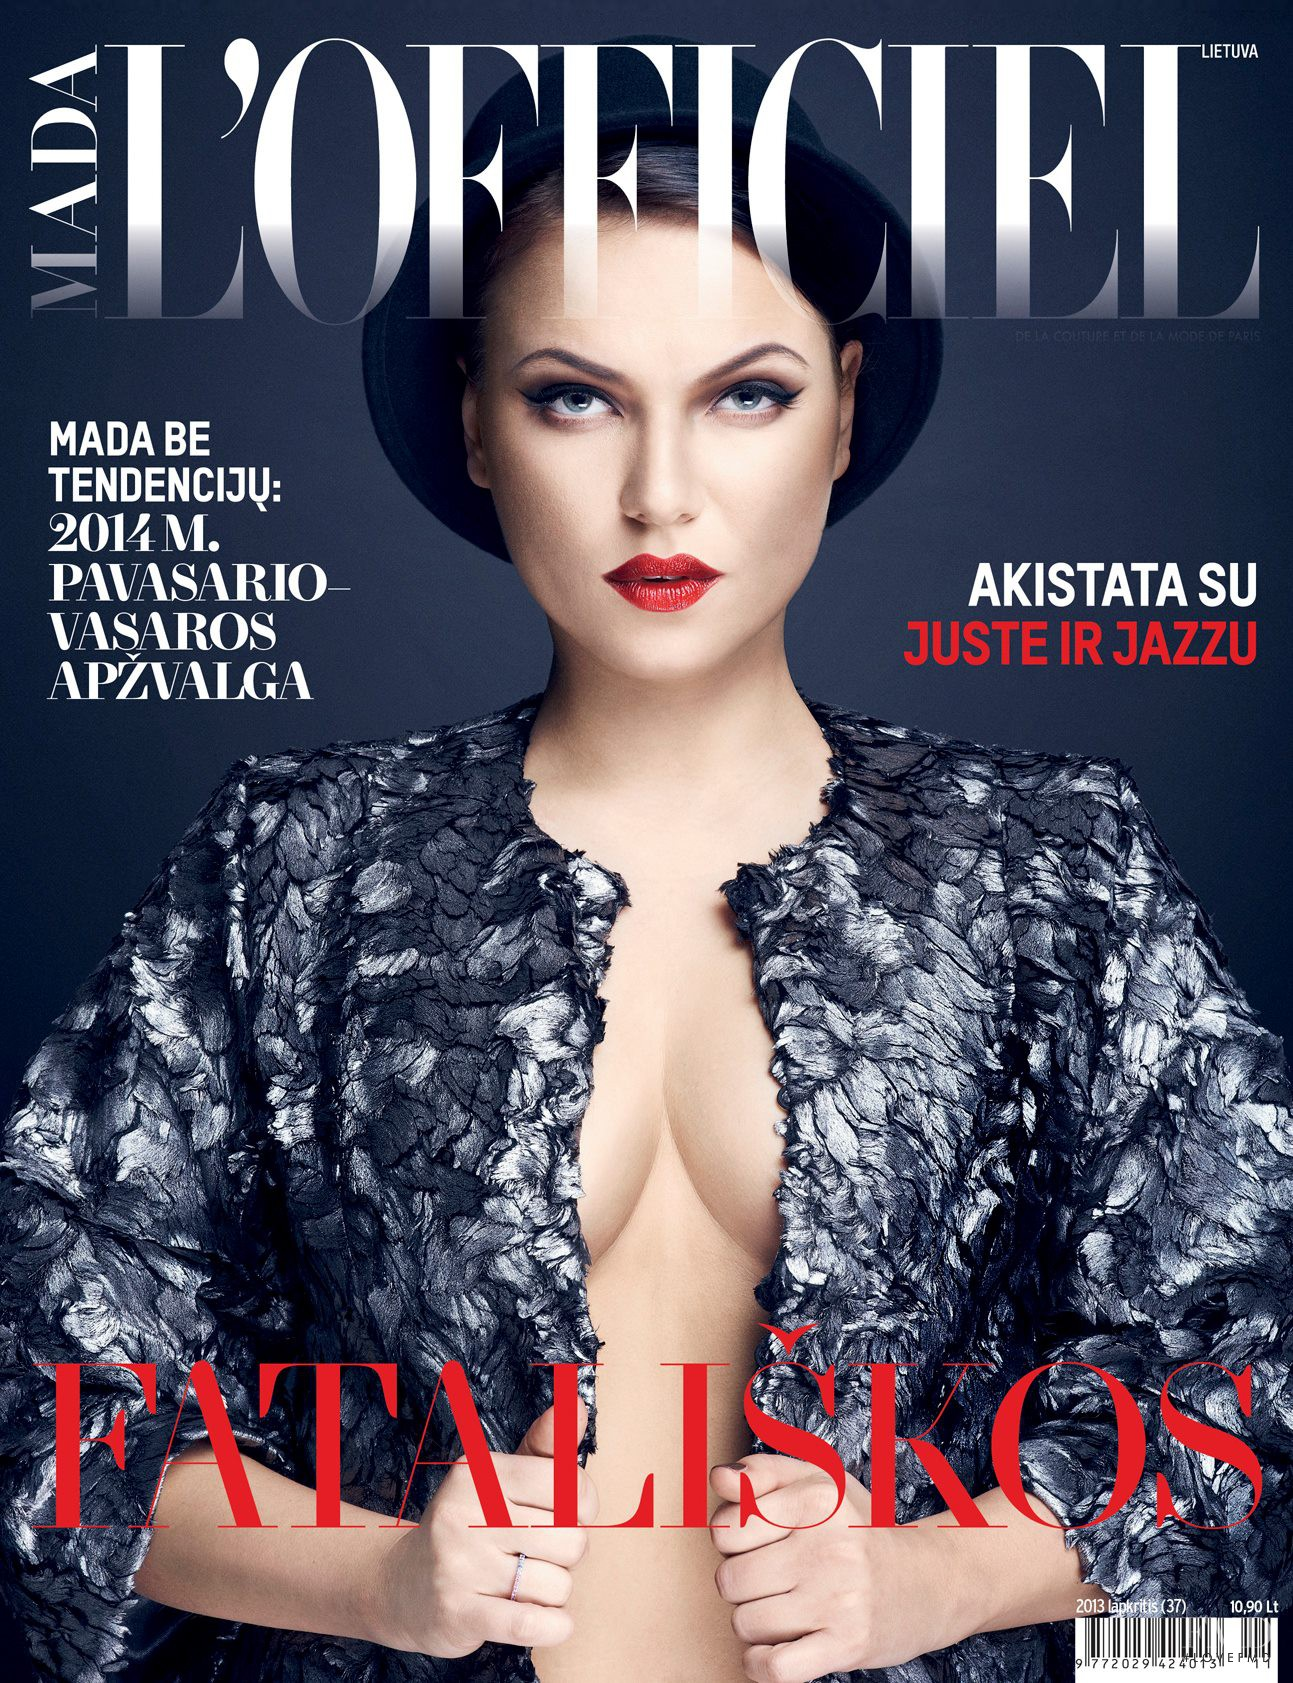 cover of l 39 officiel lithuania with juste arlauskaite november 2013 id 24806 magazines the fmd. Black Bedroom Furniture Sets. Home Design Ideas